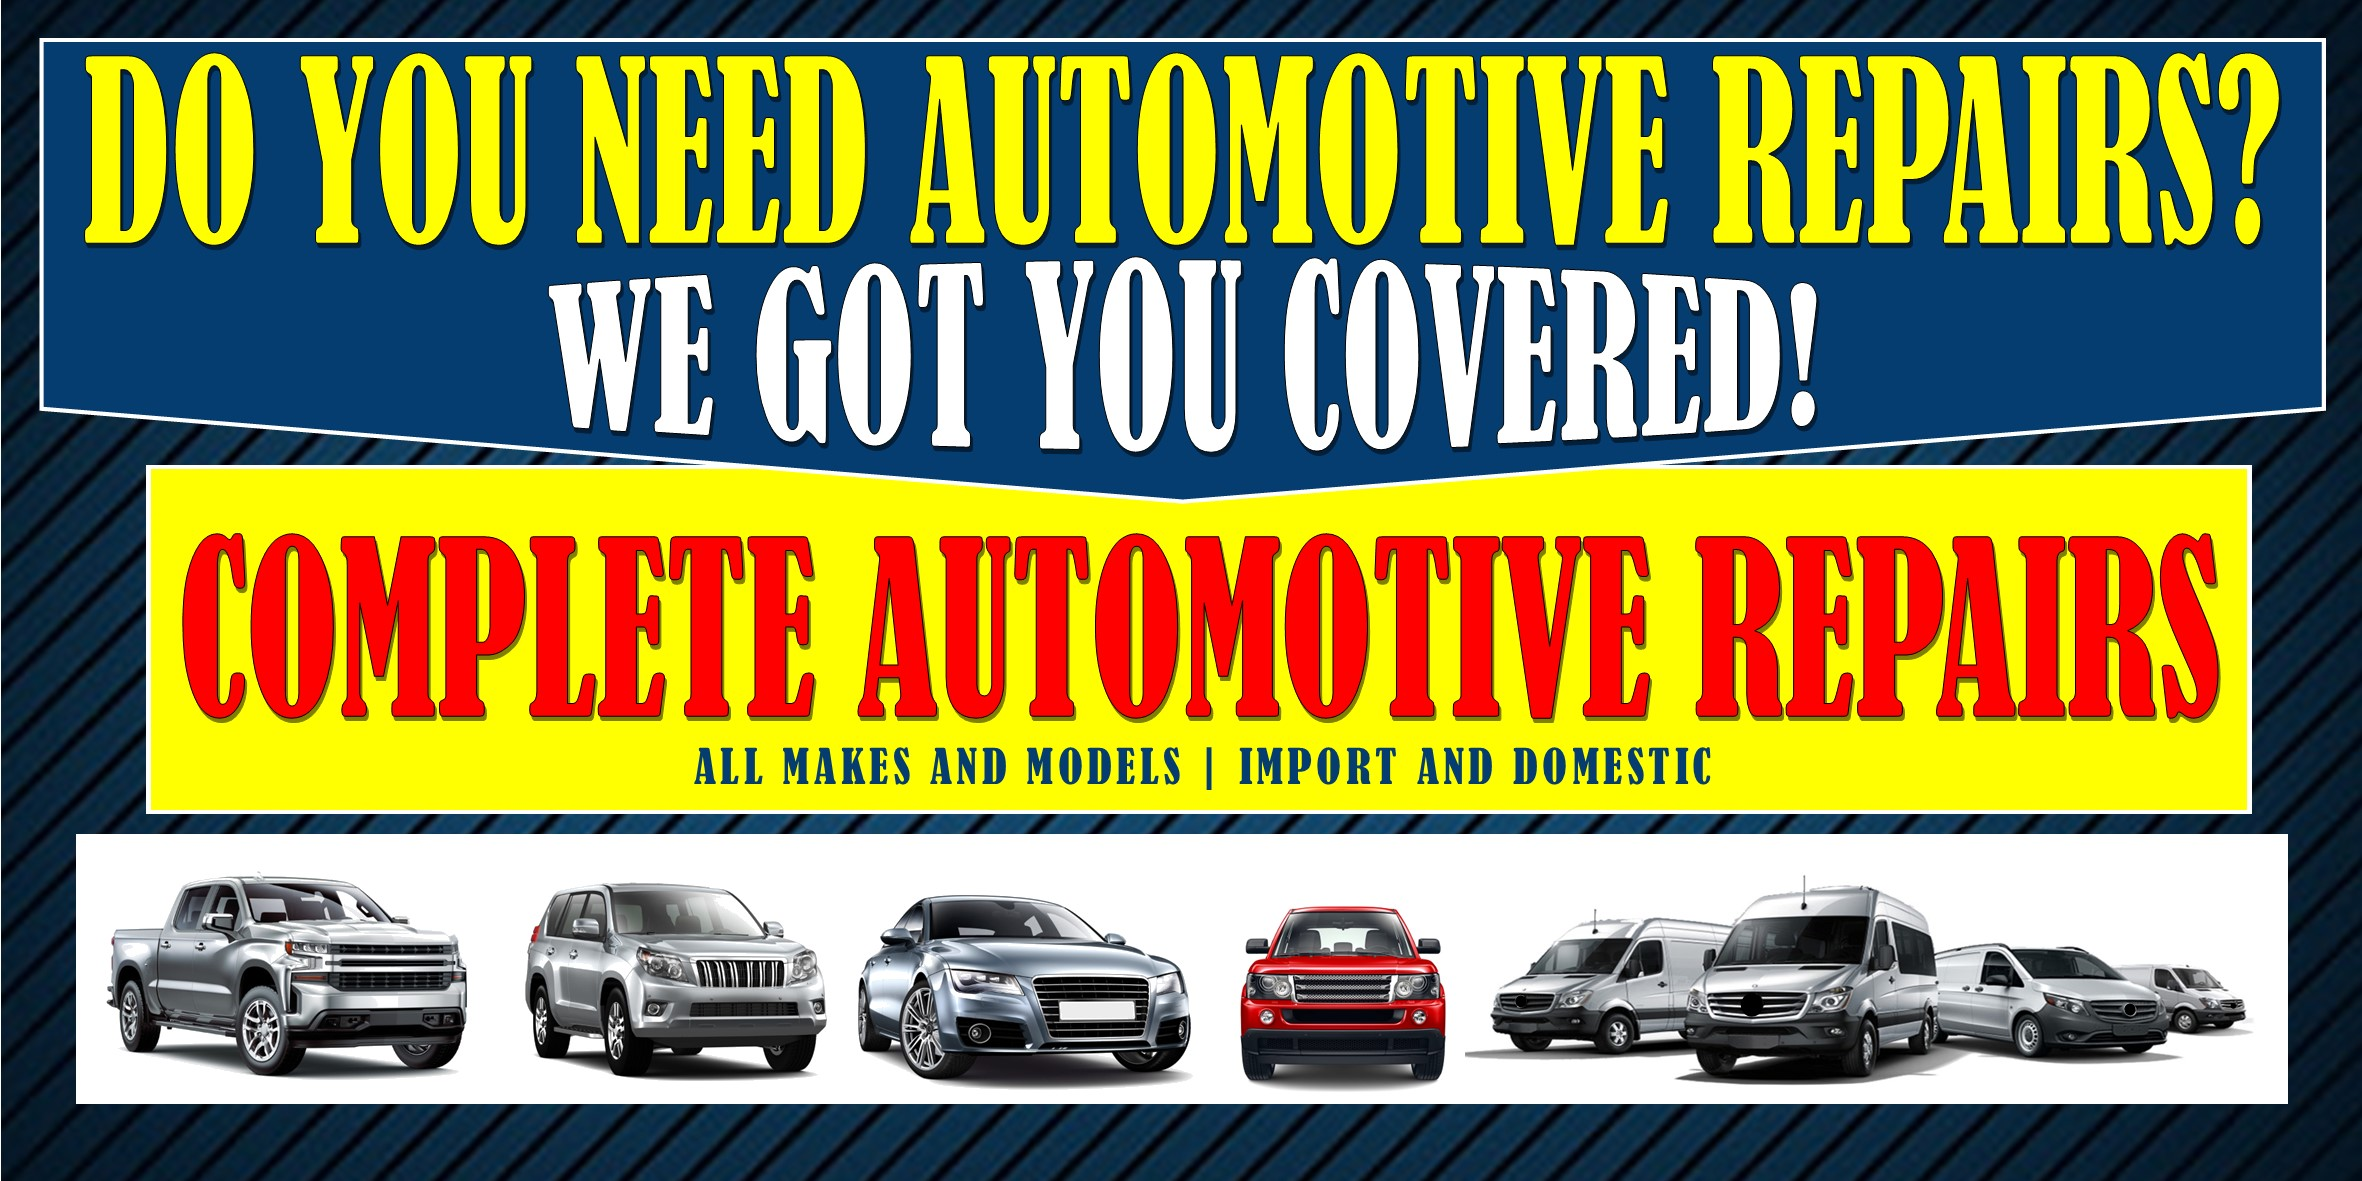 Do you need automotive service repairs?